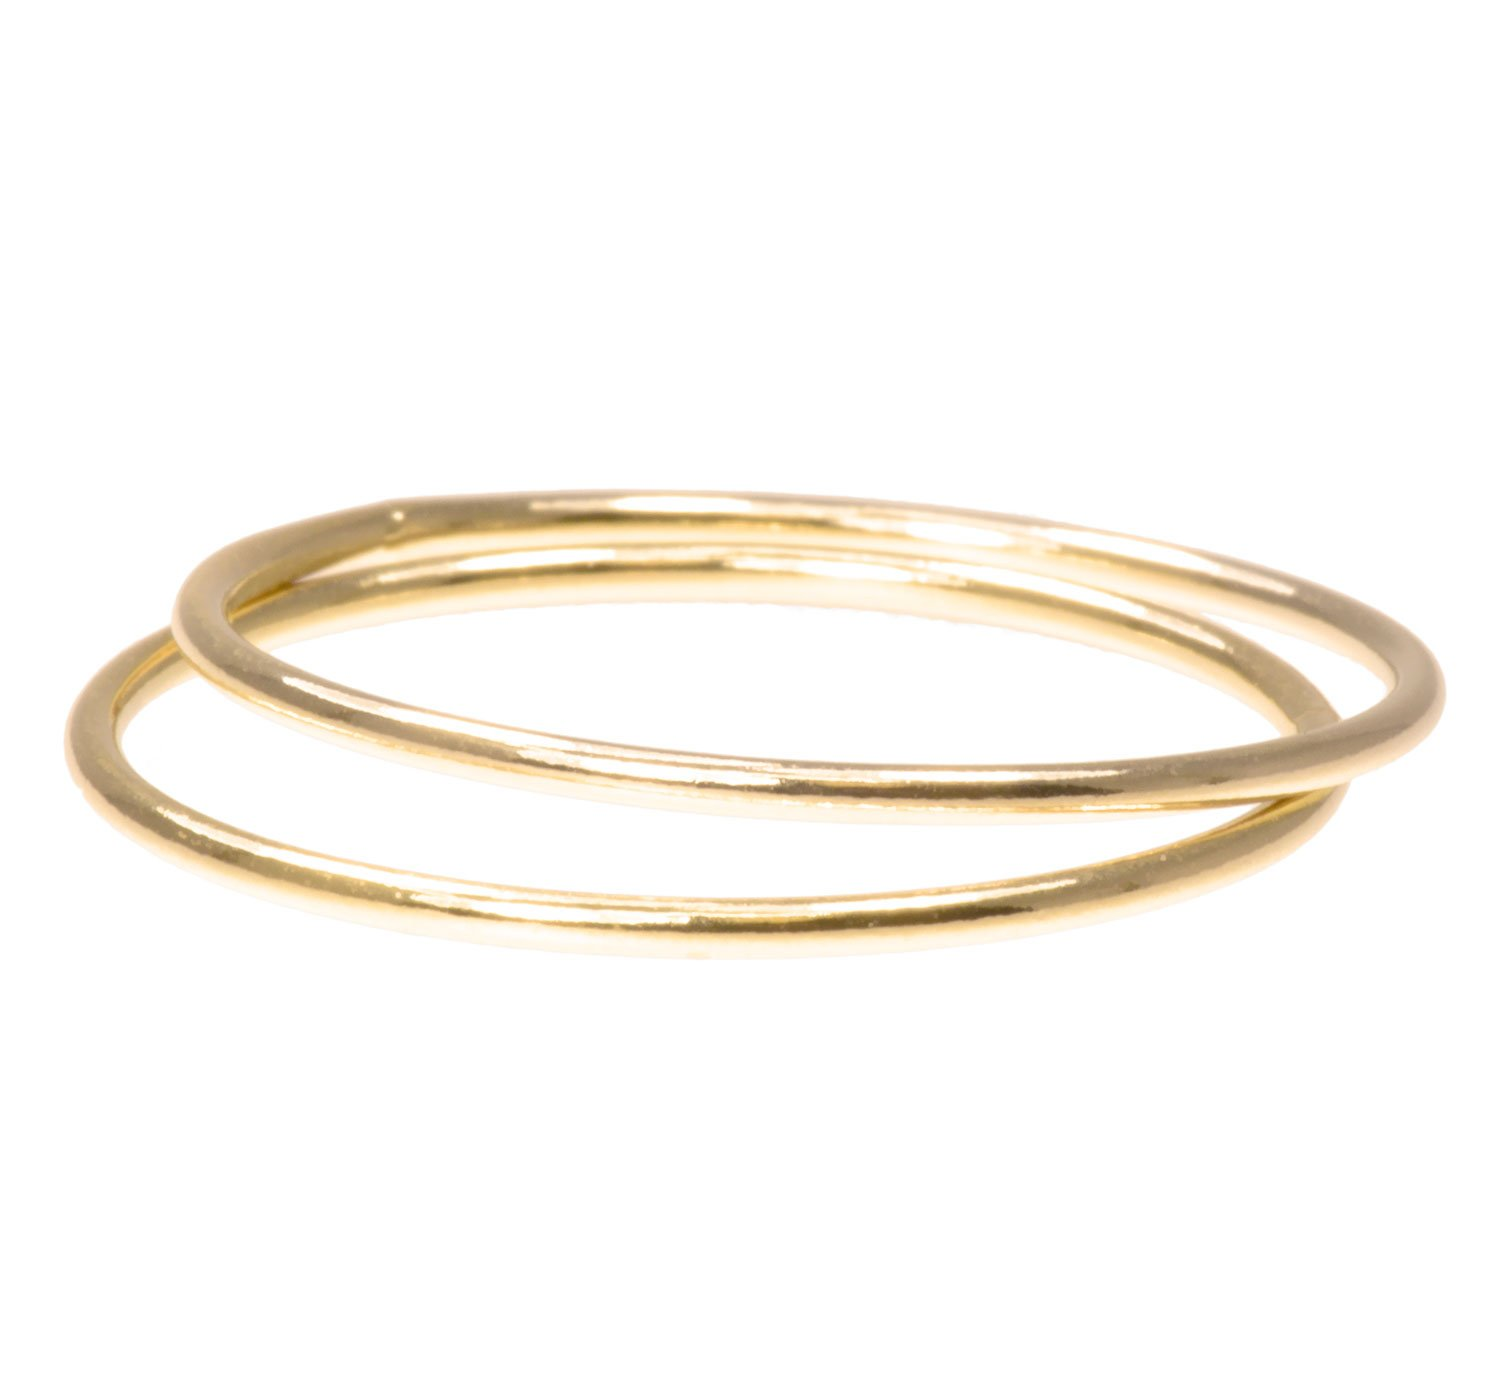 2 14K Gold Filled Stacking Rings 1mm Round Size 6 by uGems